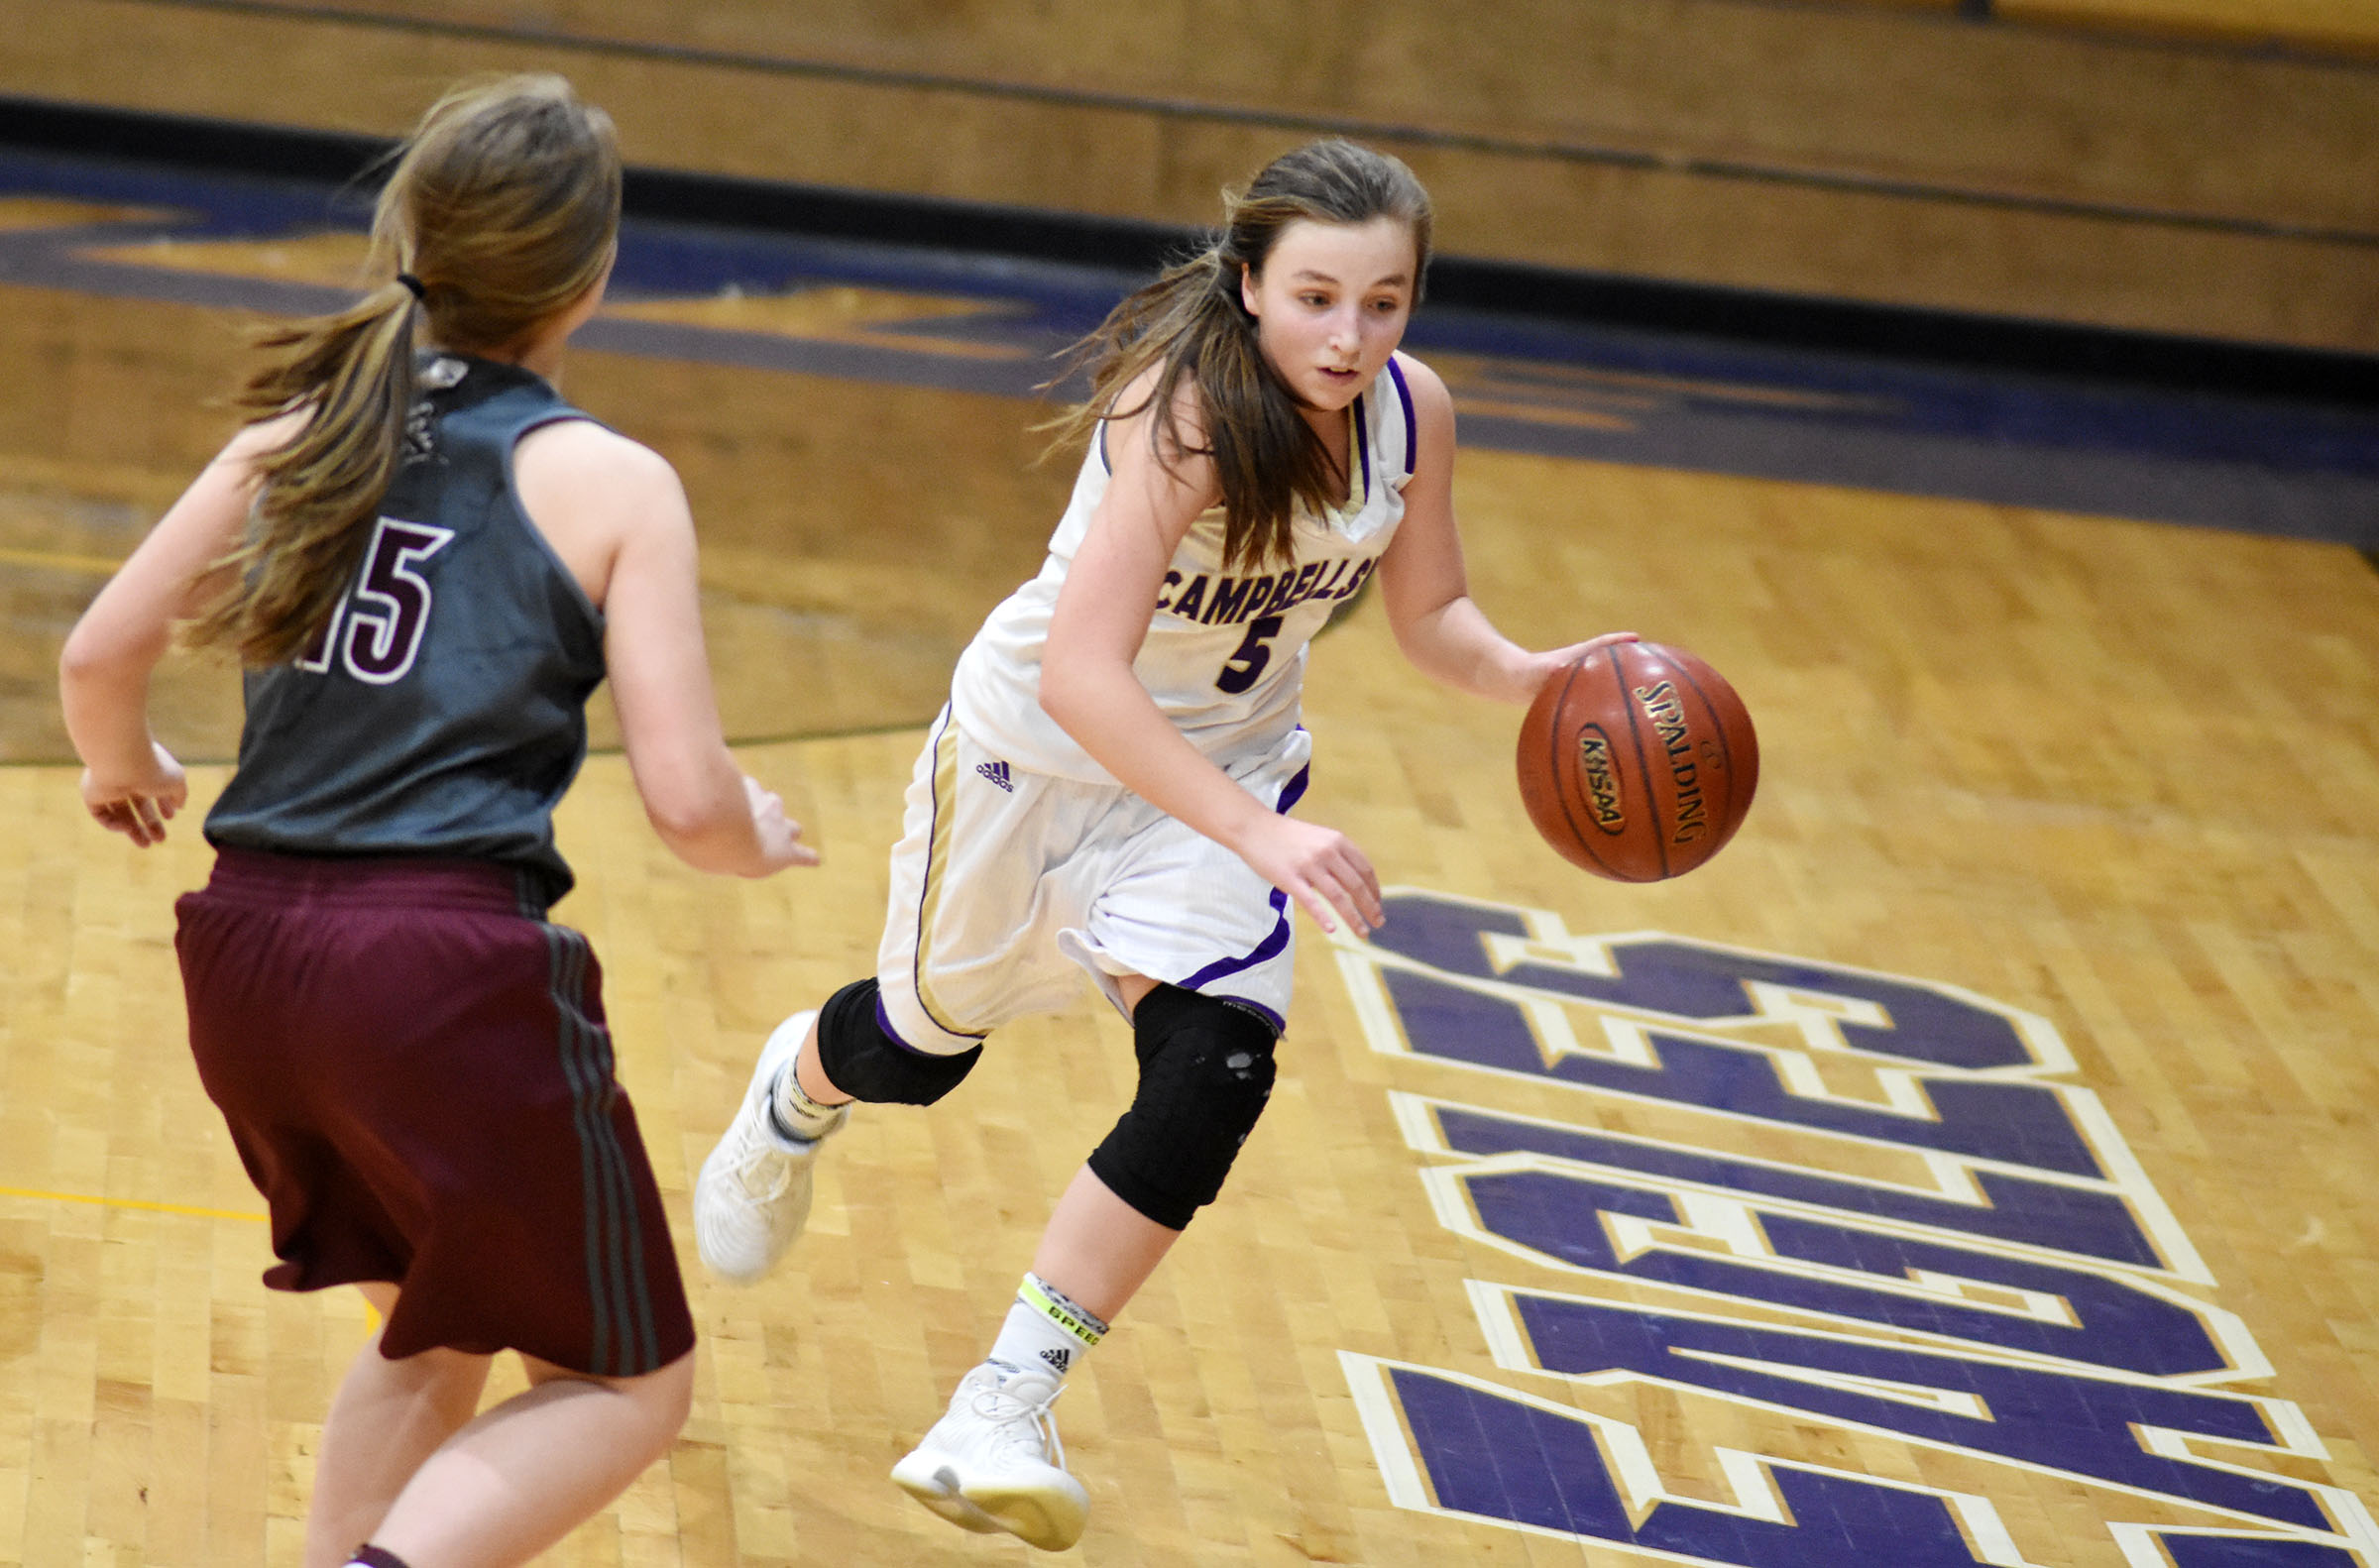 Campbellsville Middle School eighth-grader Lainey Watson dribbles to the basket.